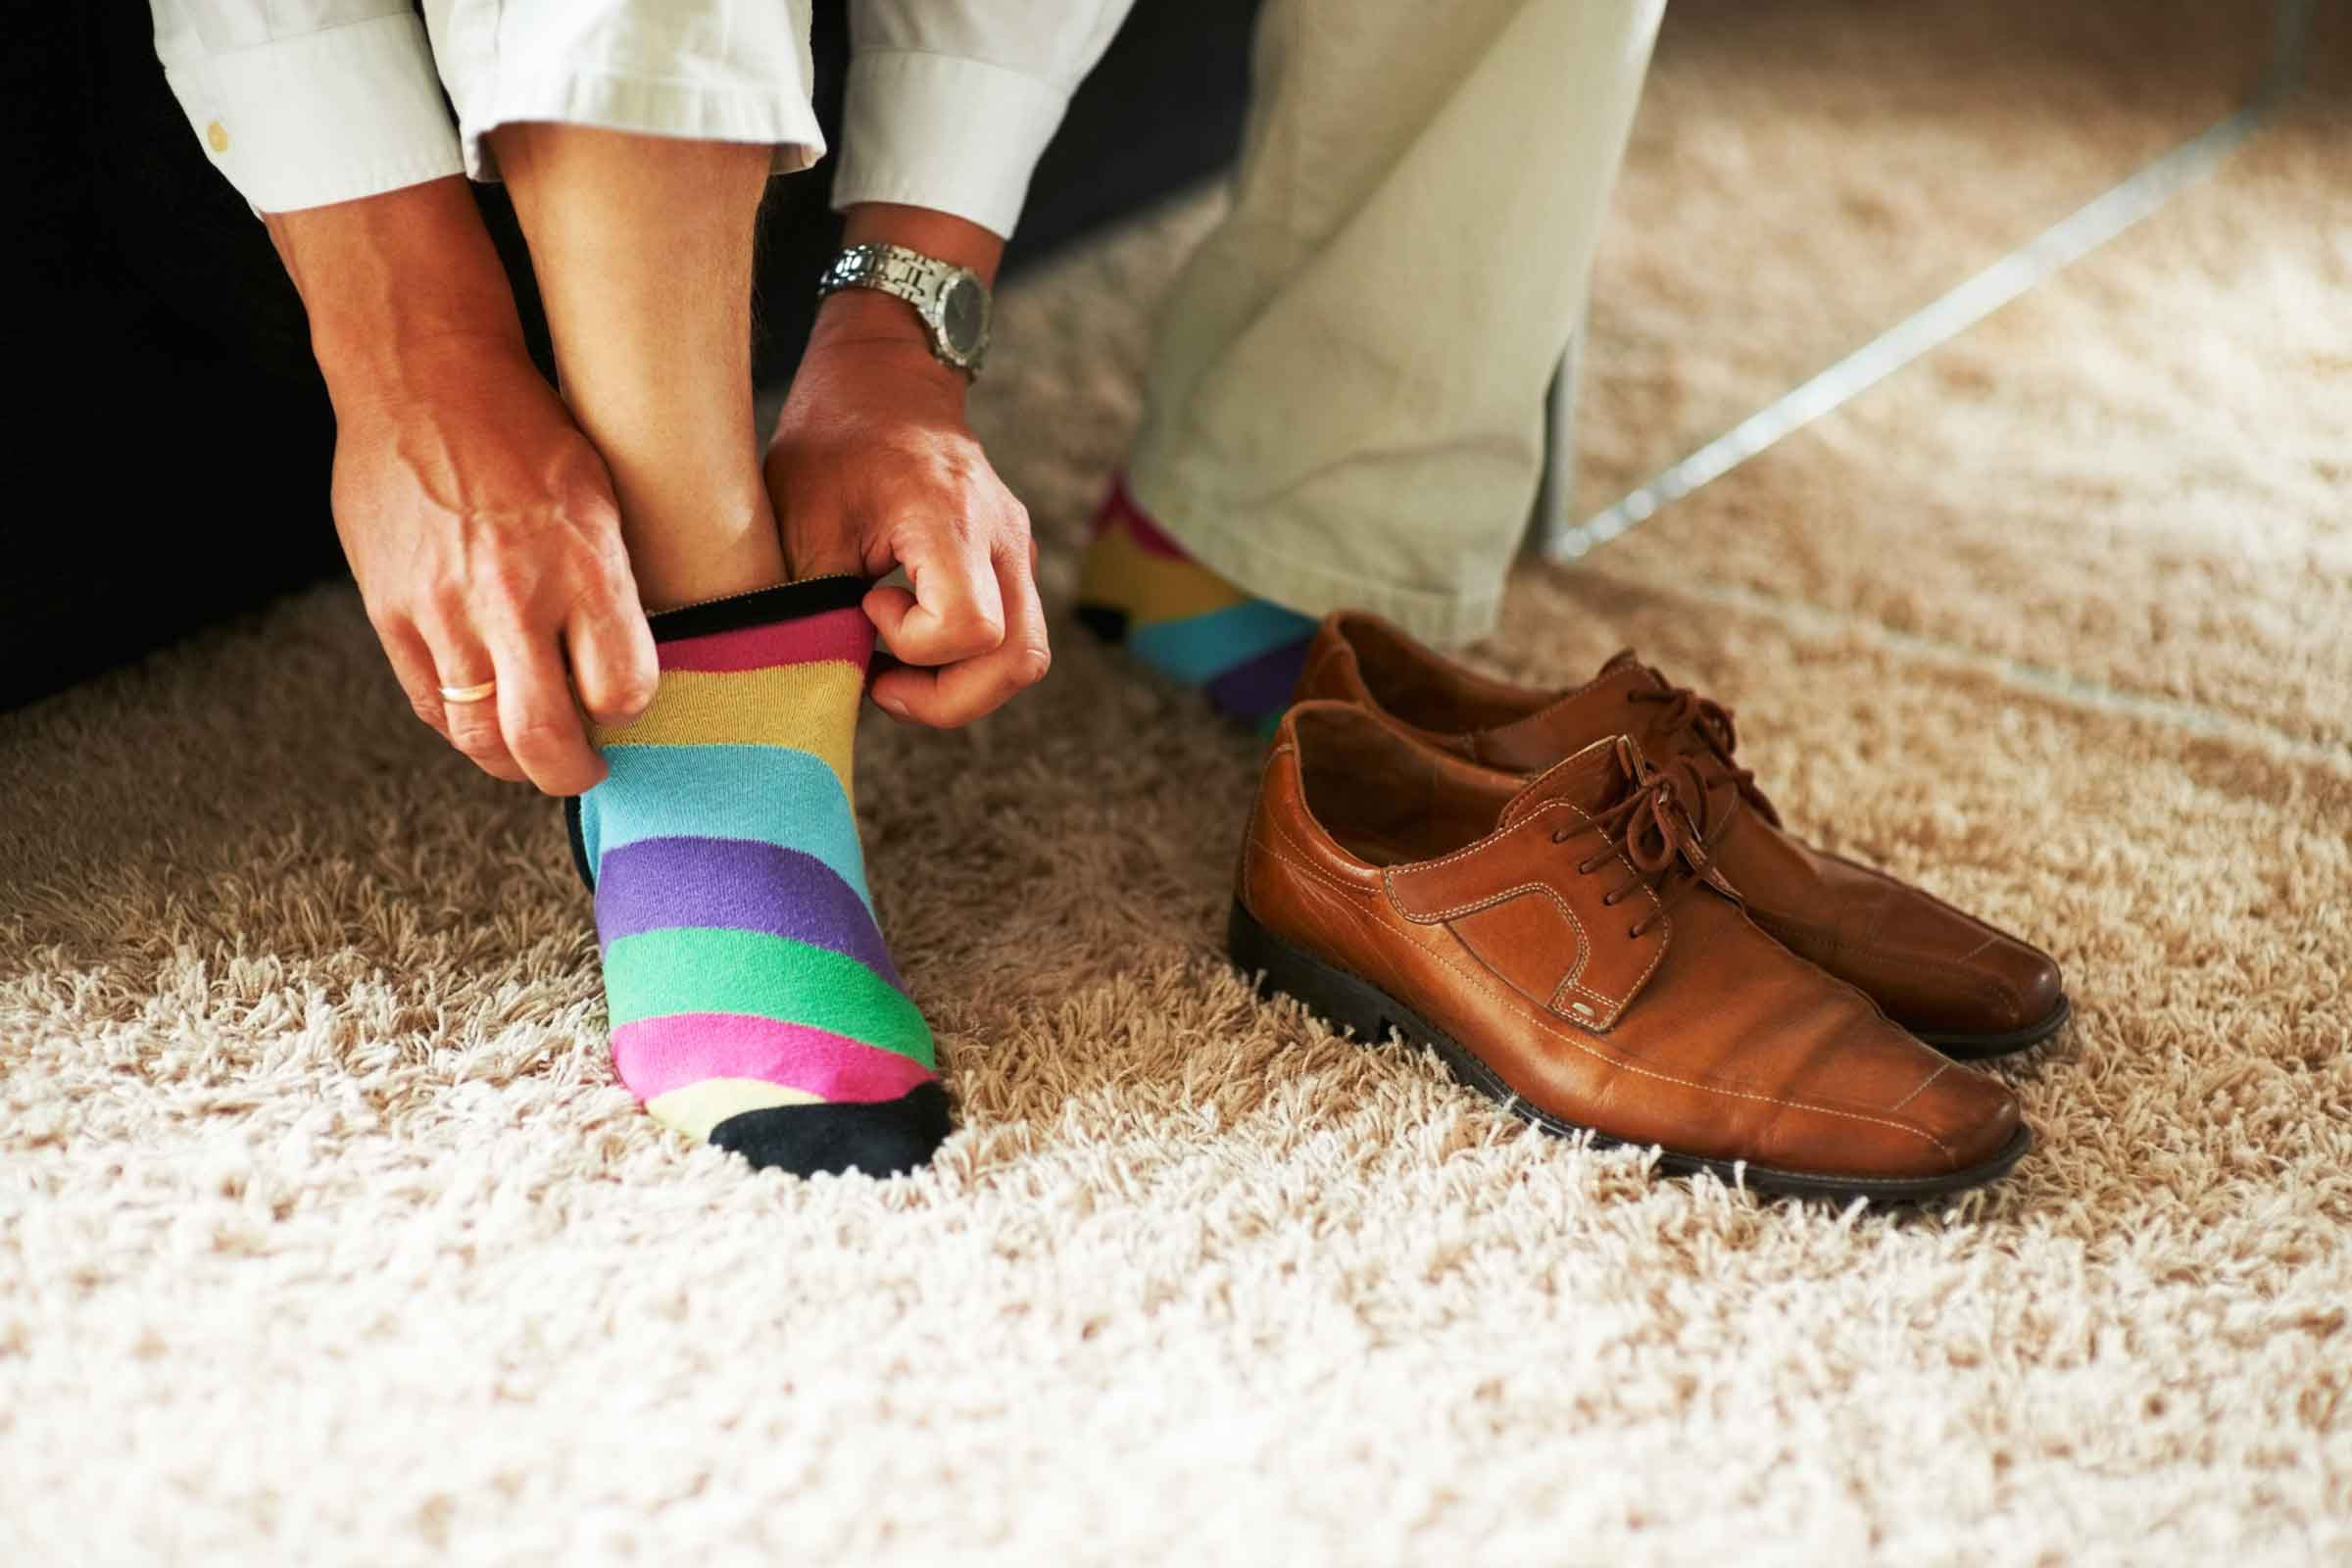 Reader's Digest:  Why To Take Your Shoes Off At Home    Need a reason to reach for your slippers? Dispel germs and keep your grimy work boots at the door for these key reasons.